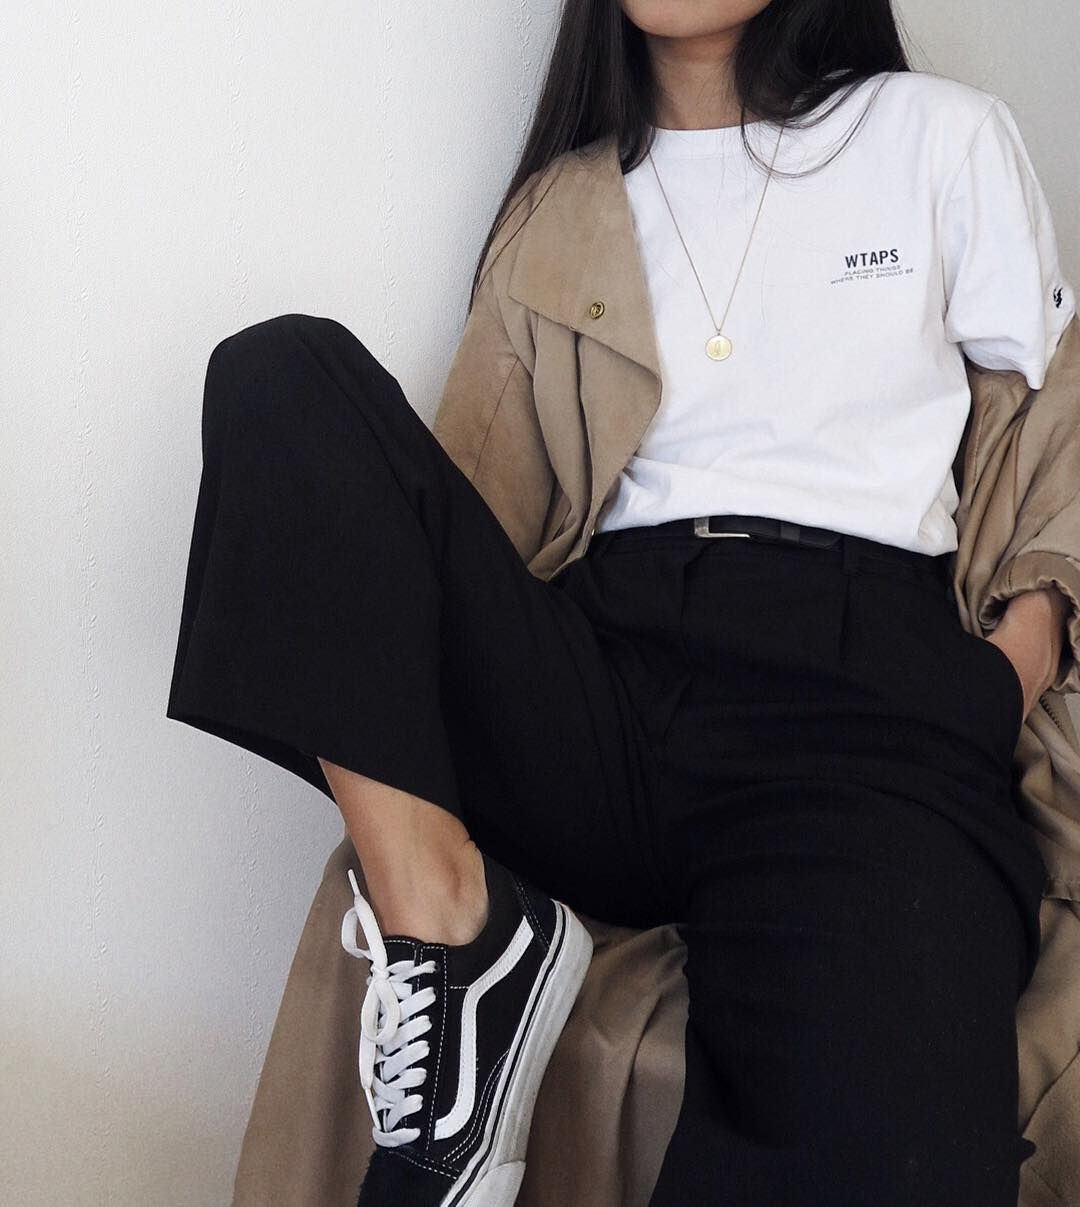 Casual style / casual comfort / outfit inspiration / street style / love  this combo: white tee, tan unstructured trench coat, black pants, old  school Van's